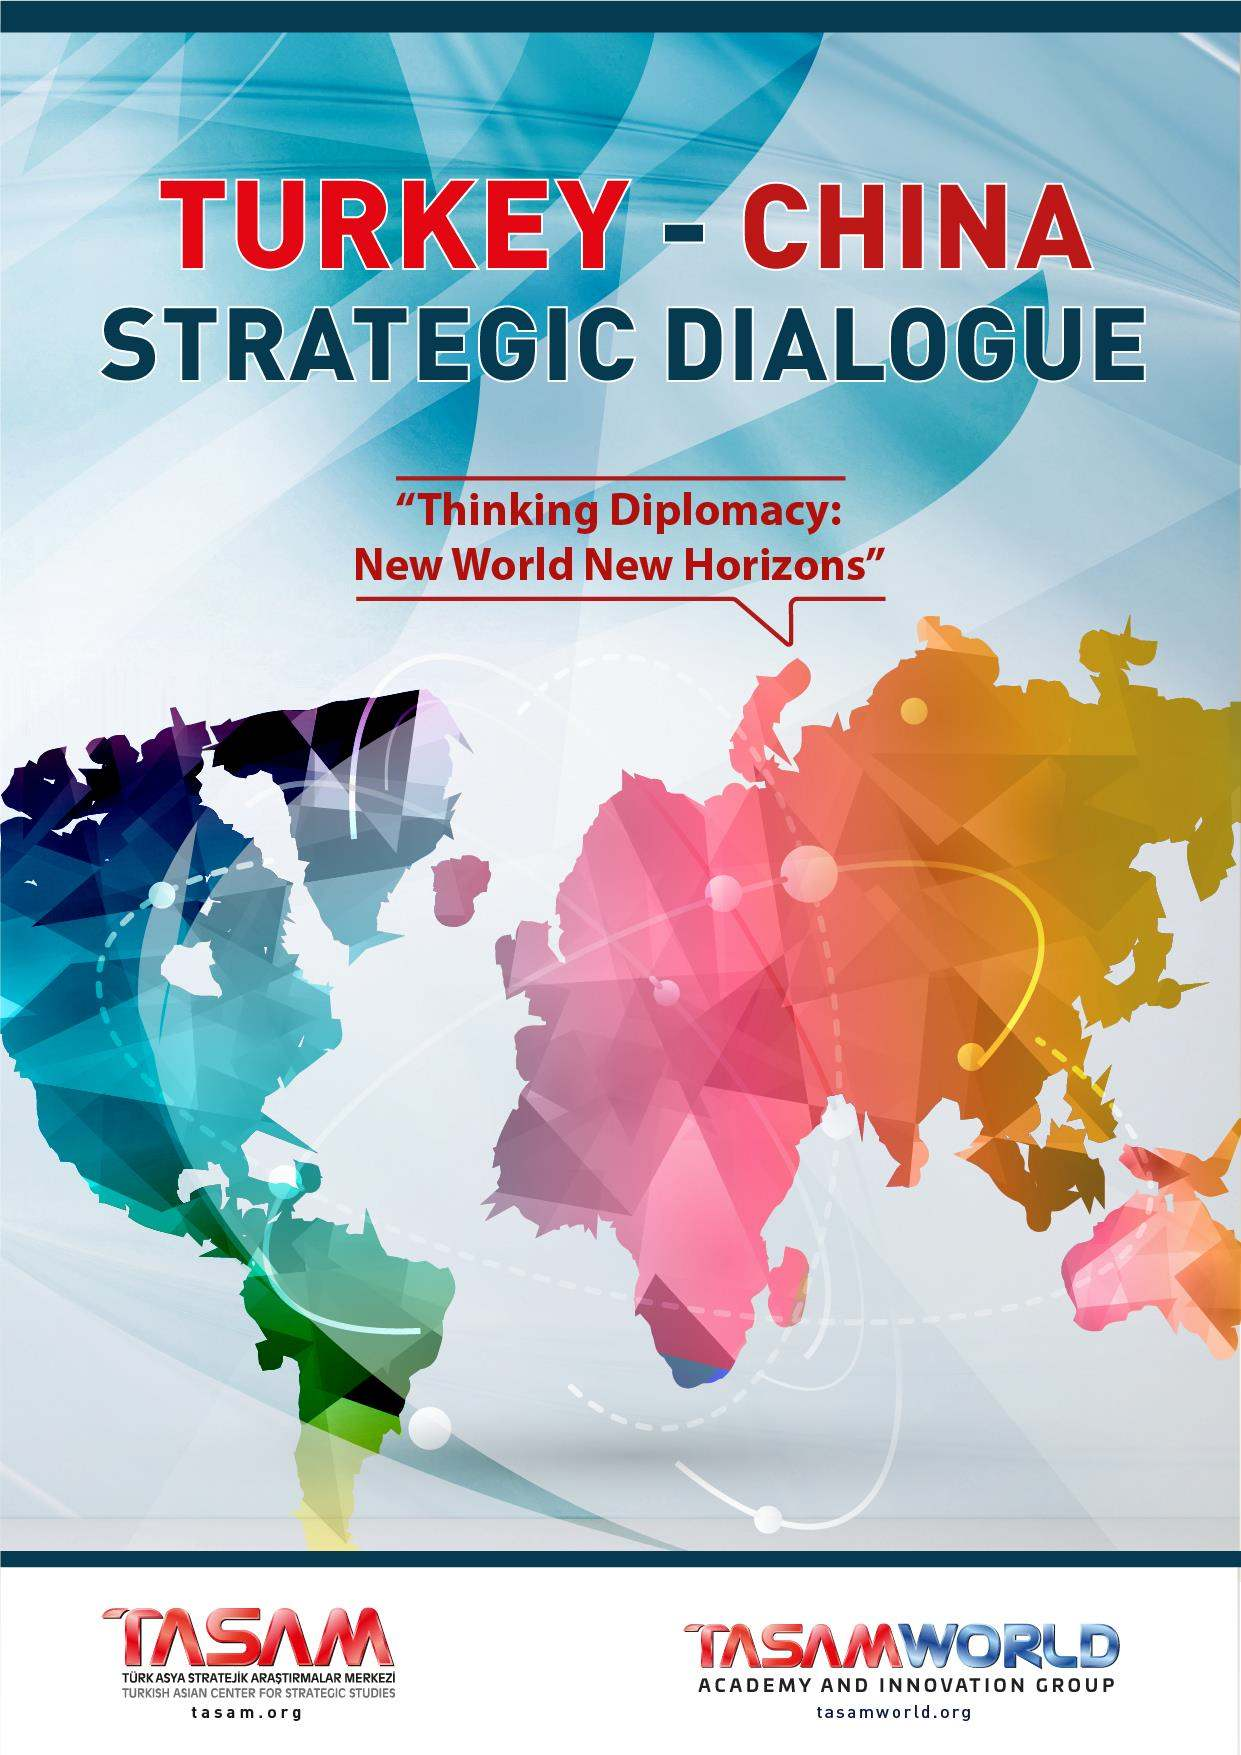 Turkey - China Strategic Dialogue